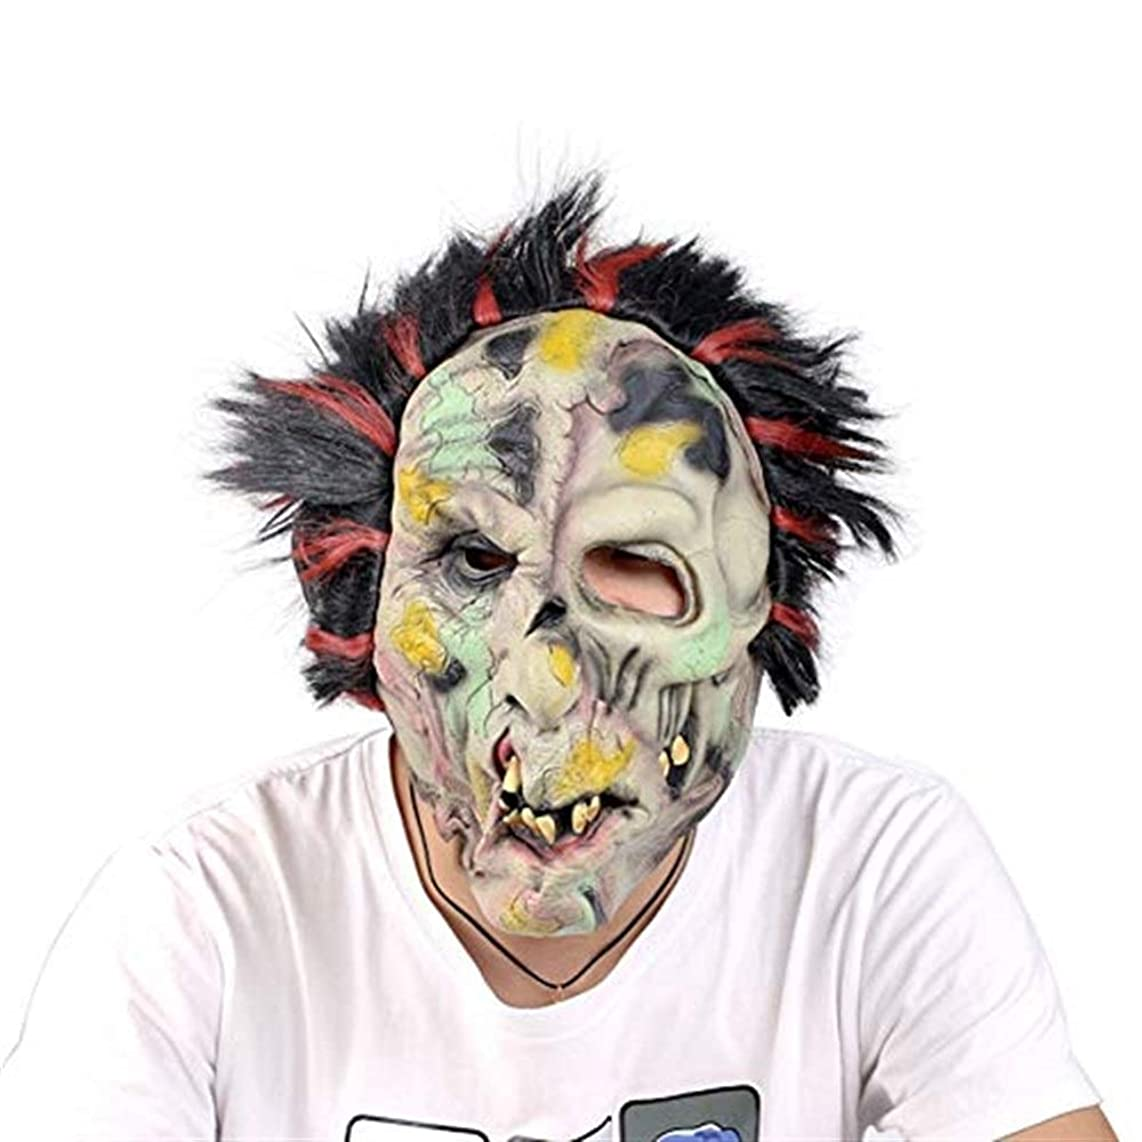 Halloween mask Halloween Party Masks Latex Mask Old Man Latex Mask for Masquerade Halloween Costume Party Supplies Mask mask